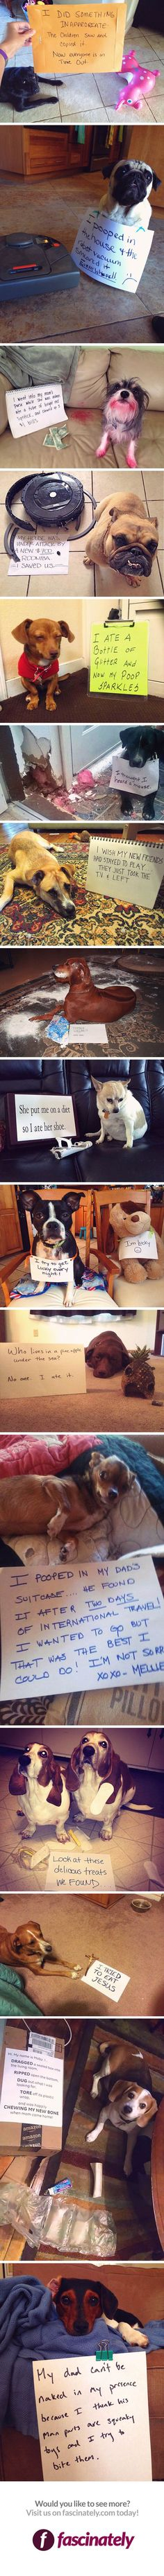 Meet the Naughtiest Dogs of 2014 I laughed so hard!